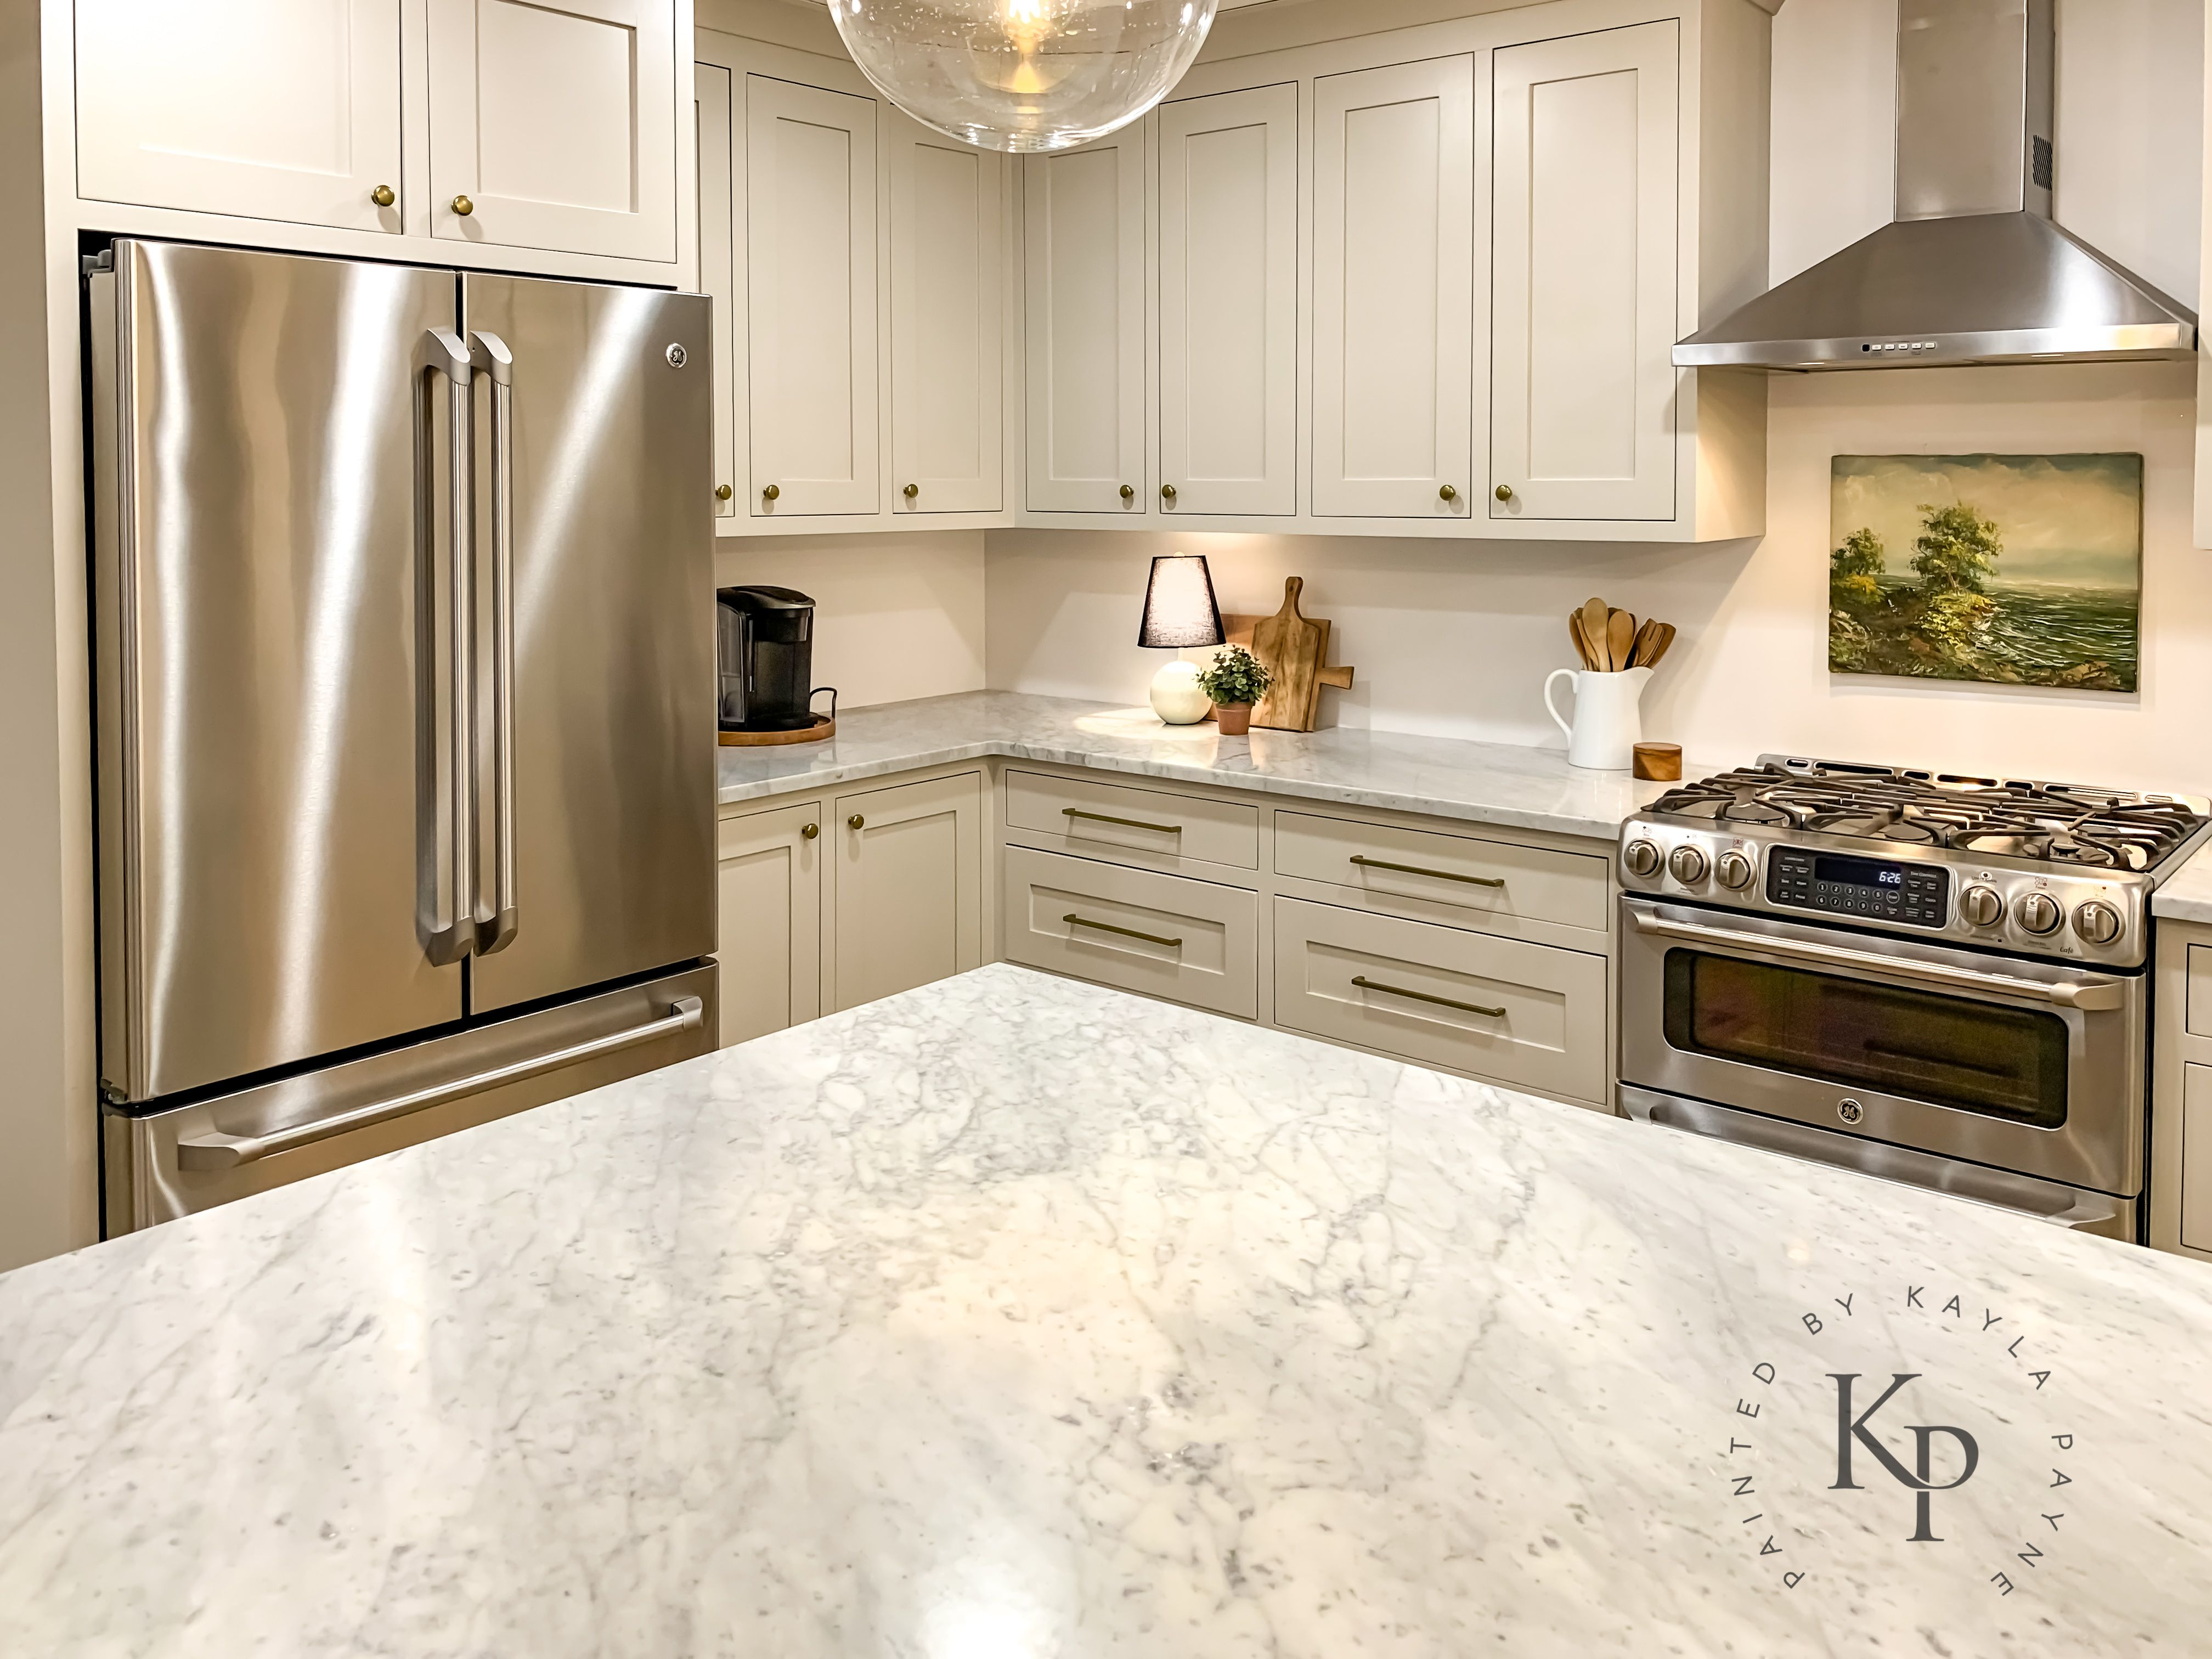 Revere Pewter Kitchen Cabinets Painted By Kayla Payne Revere Pewter Kitchen Greige Kitchen Painting Cabinets